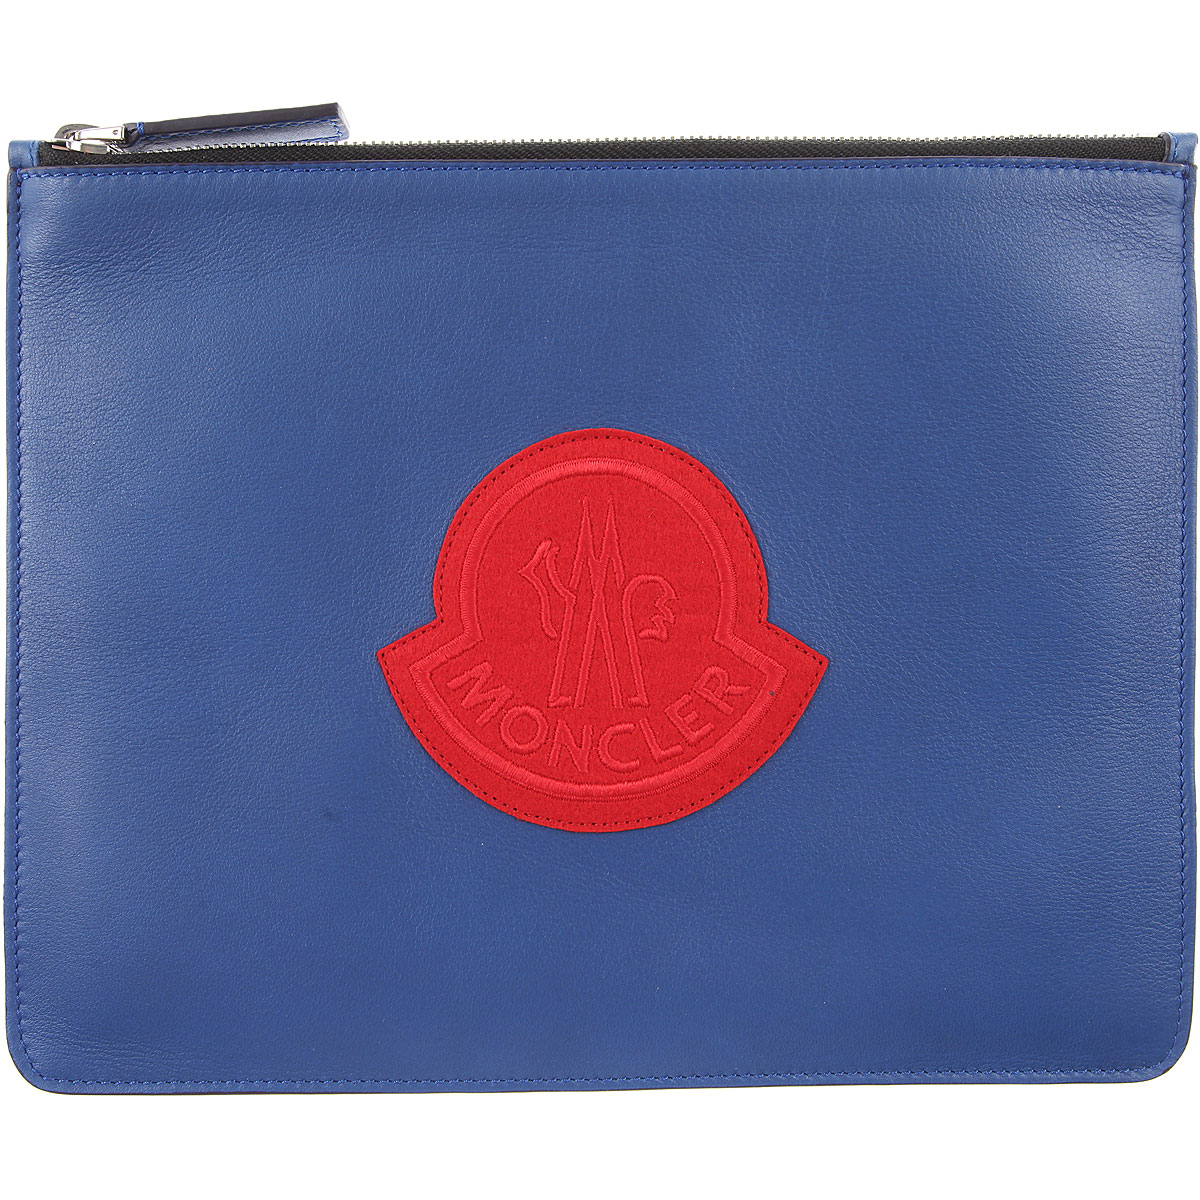 Image of Moncler Women\'s Pouch, Blue, Leather, 2017